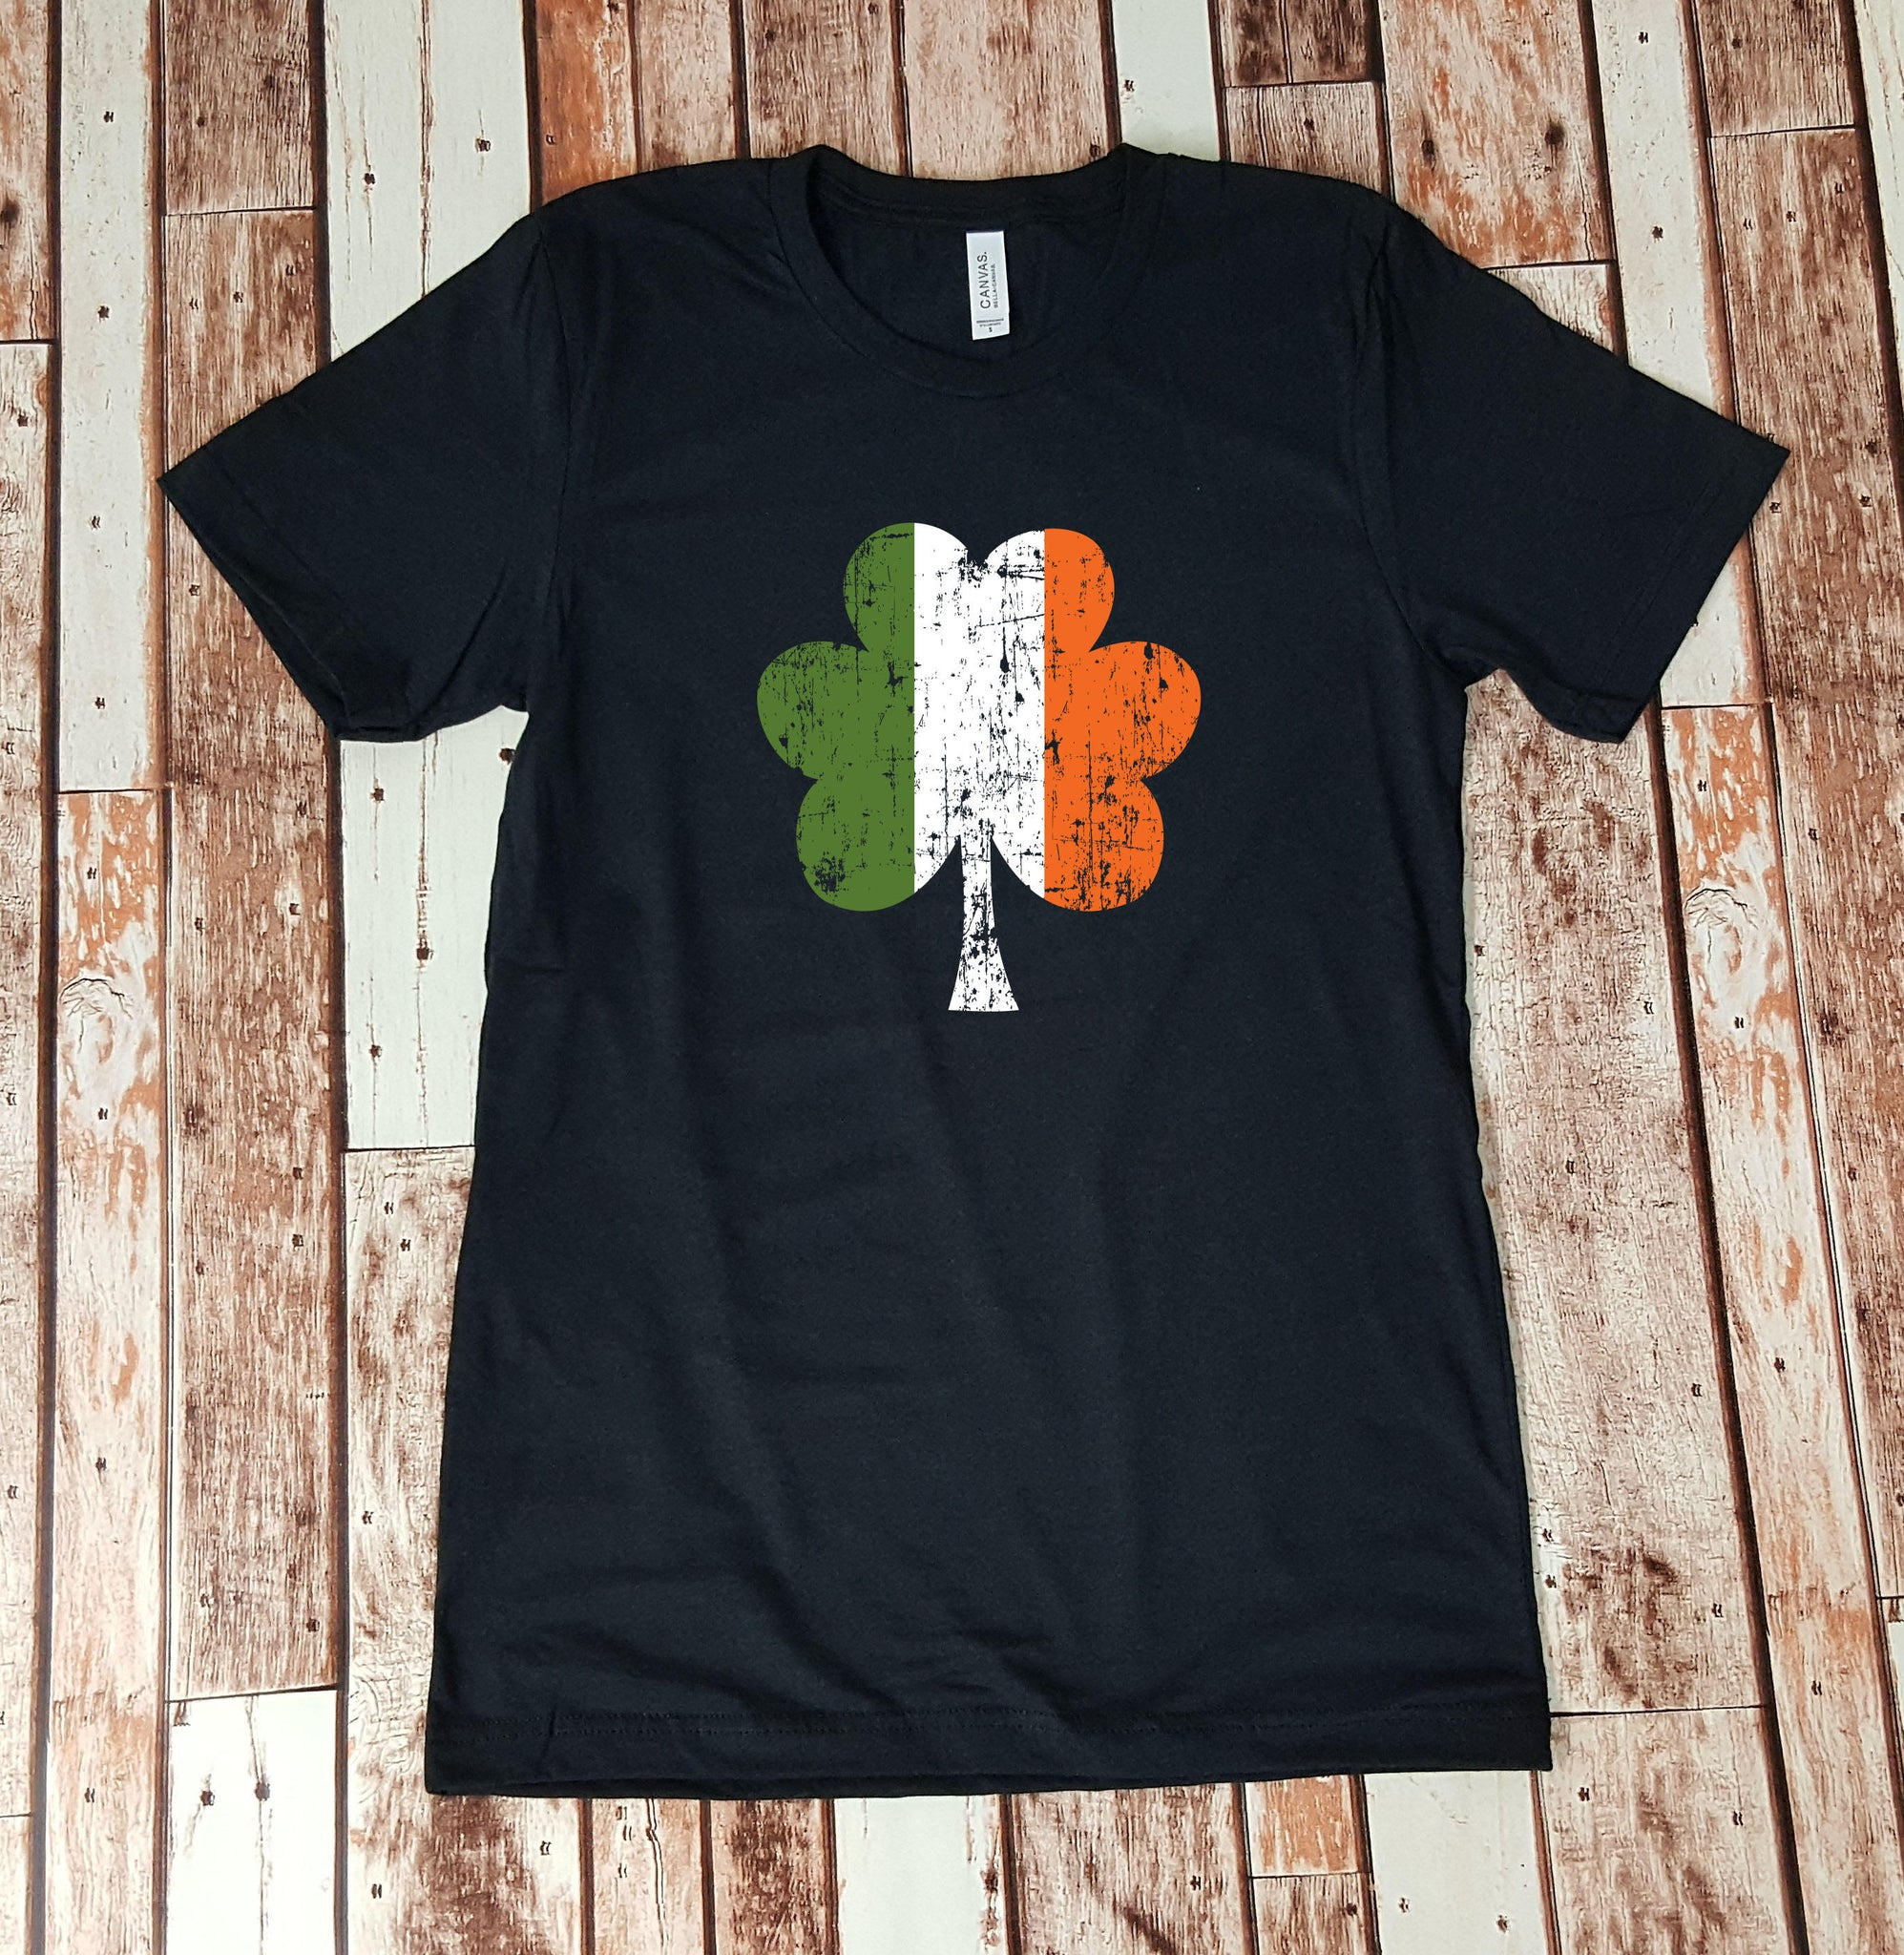 Irish Flag - Distressed Clover